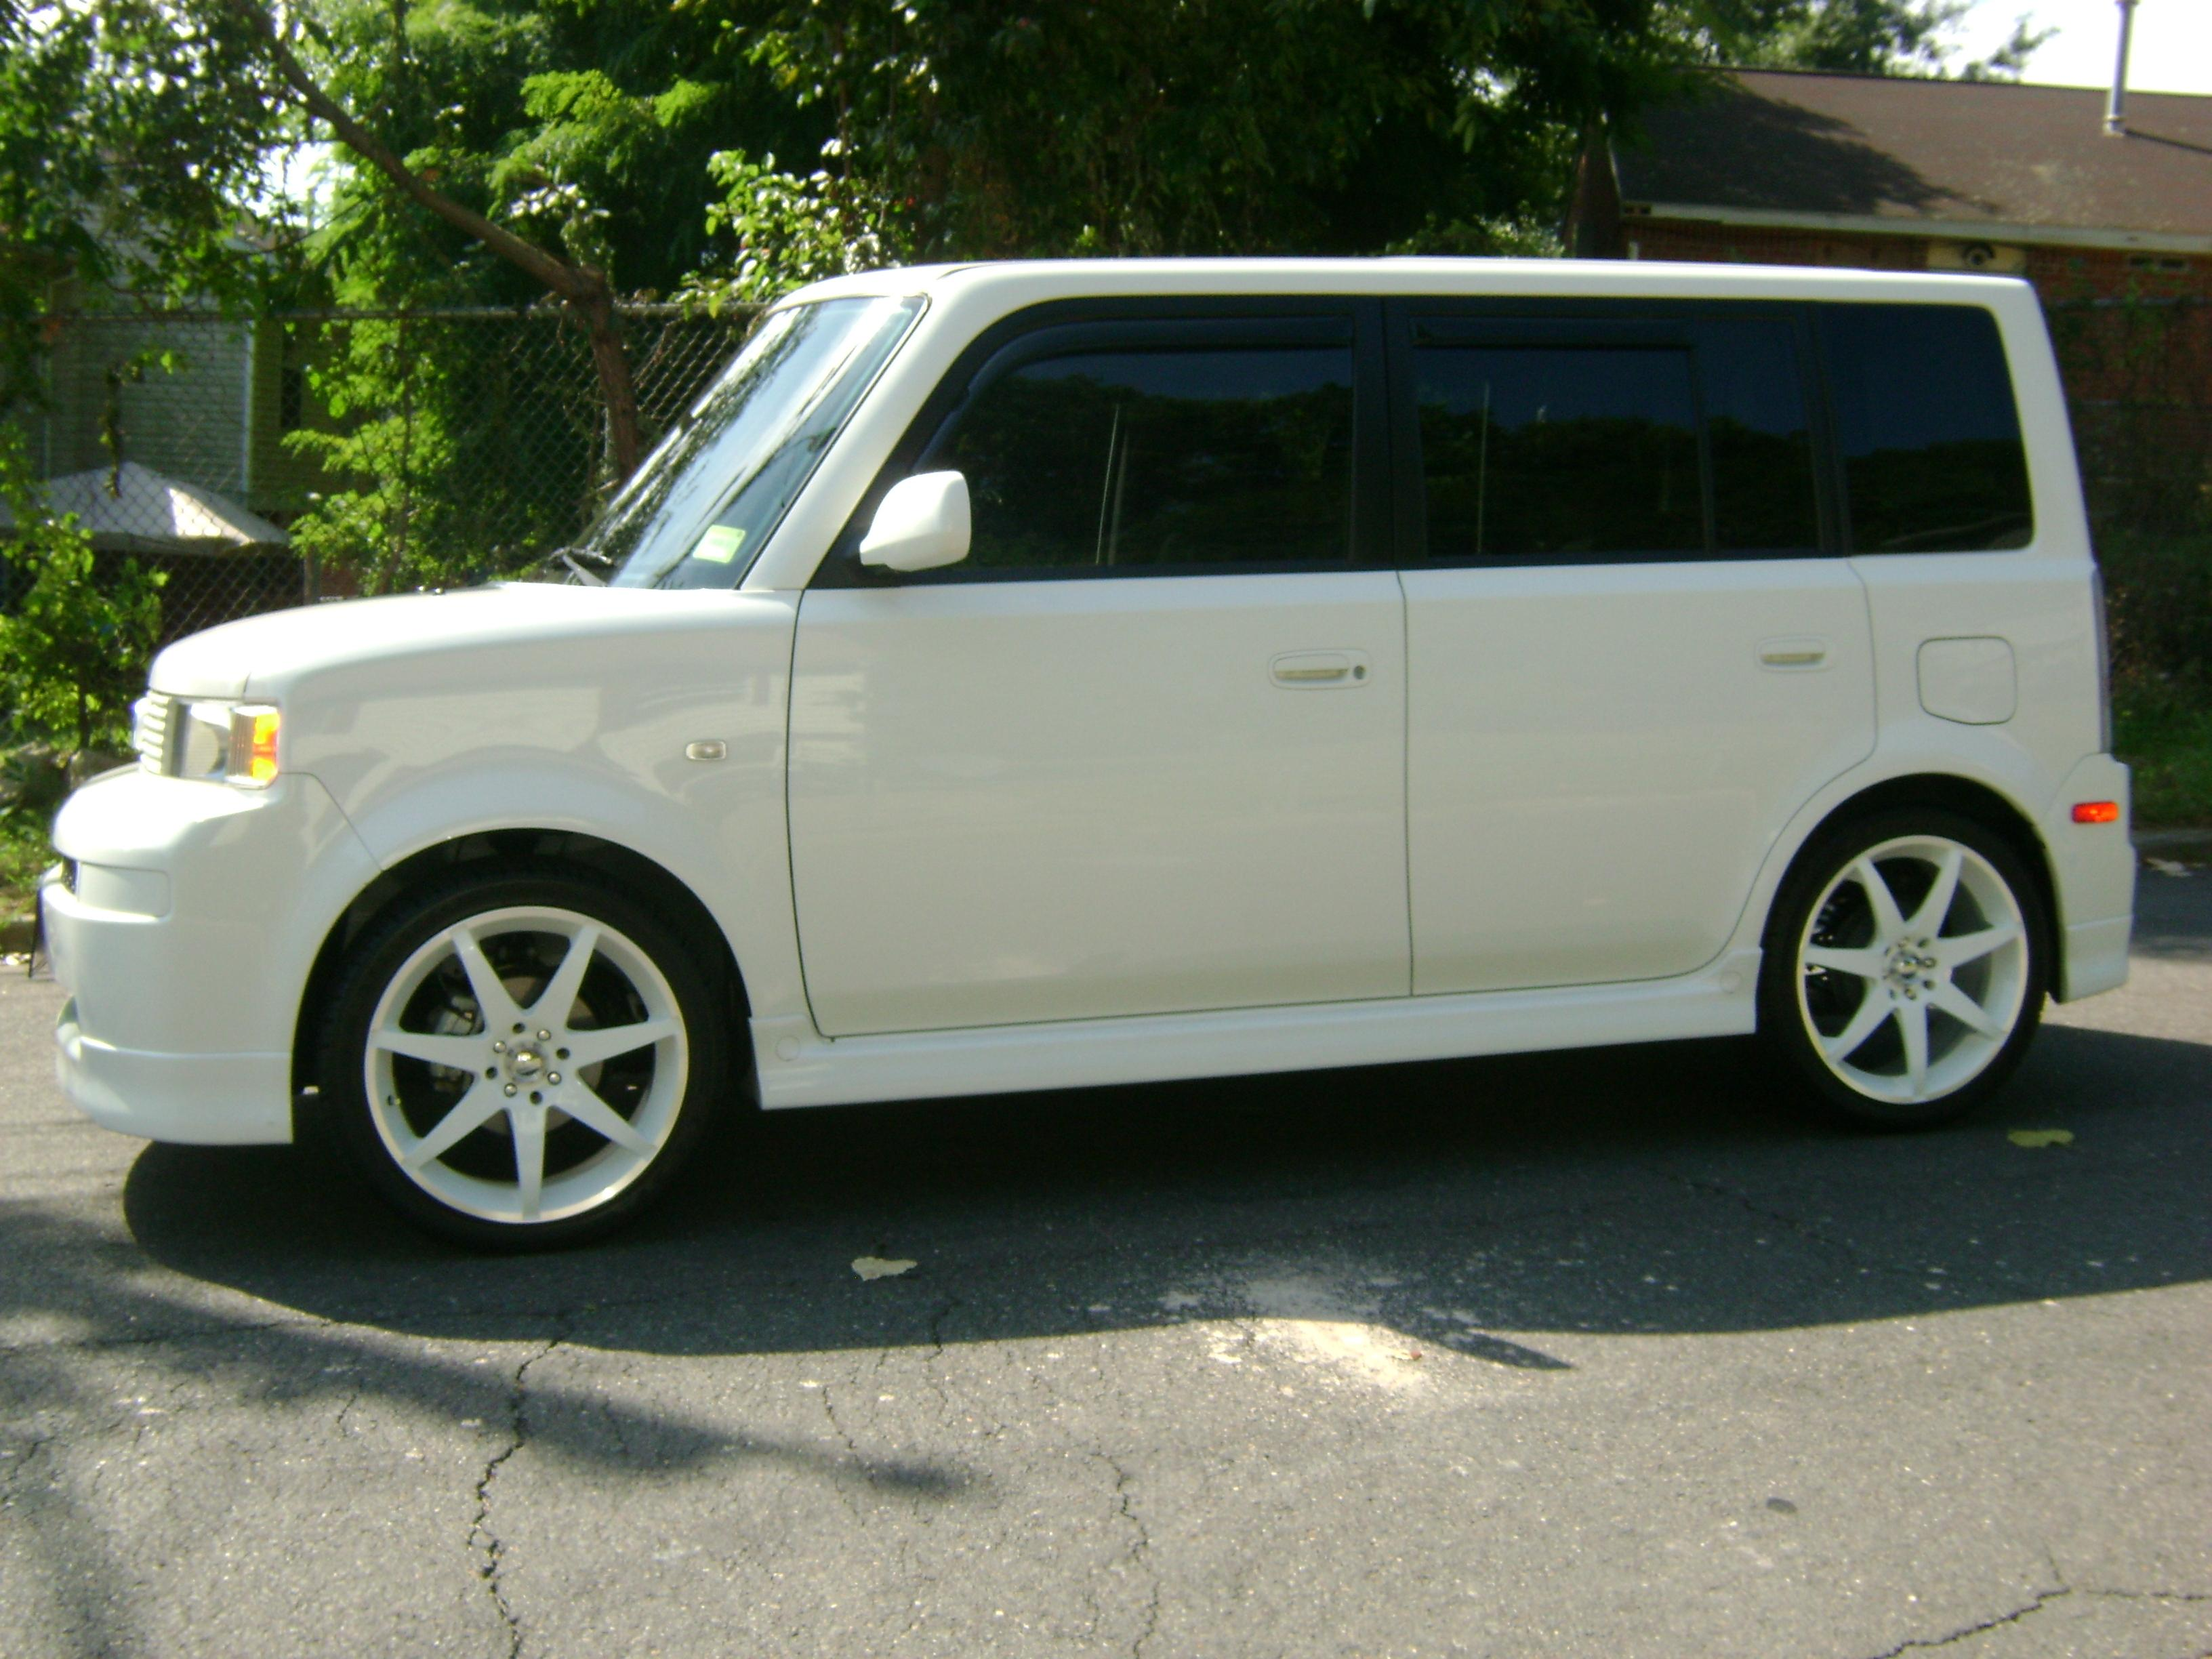 gallery front dc features turp scion xb juiced photo orange lava hot o right toyota sports image